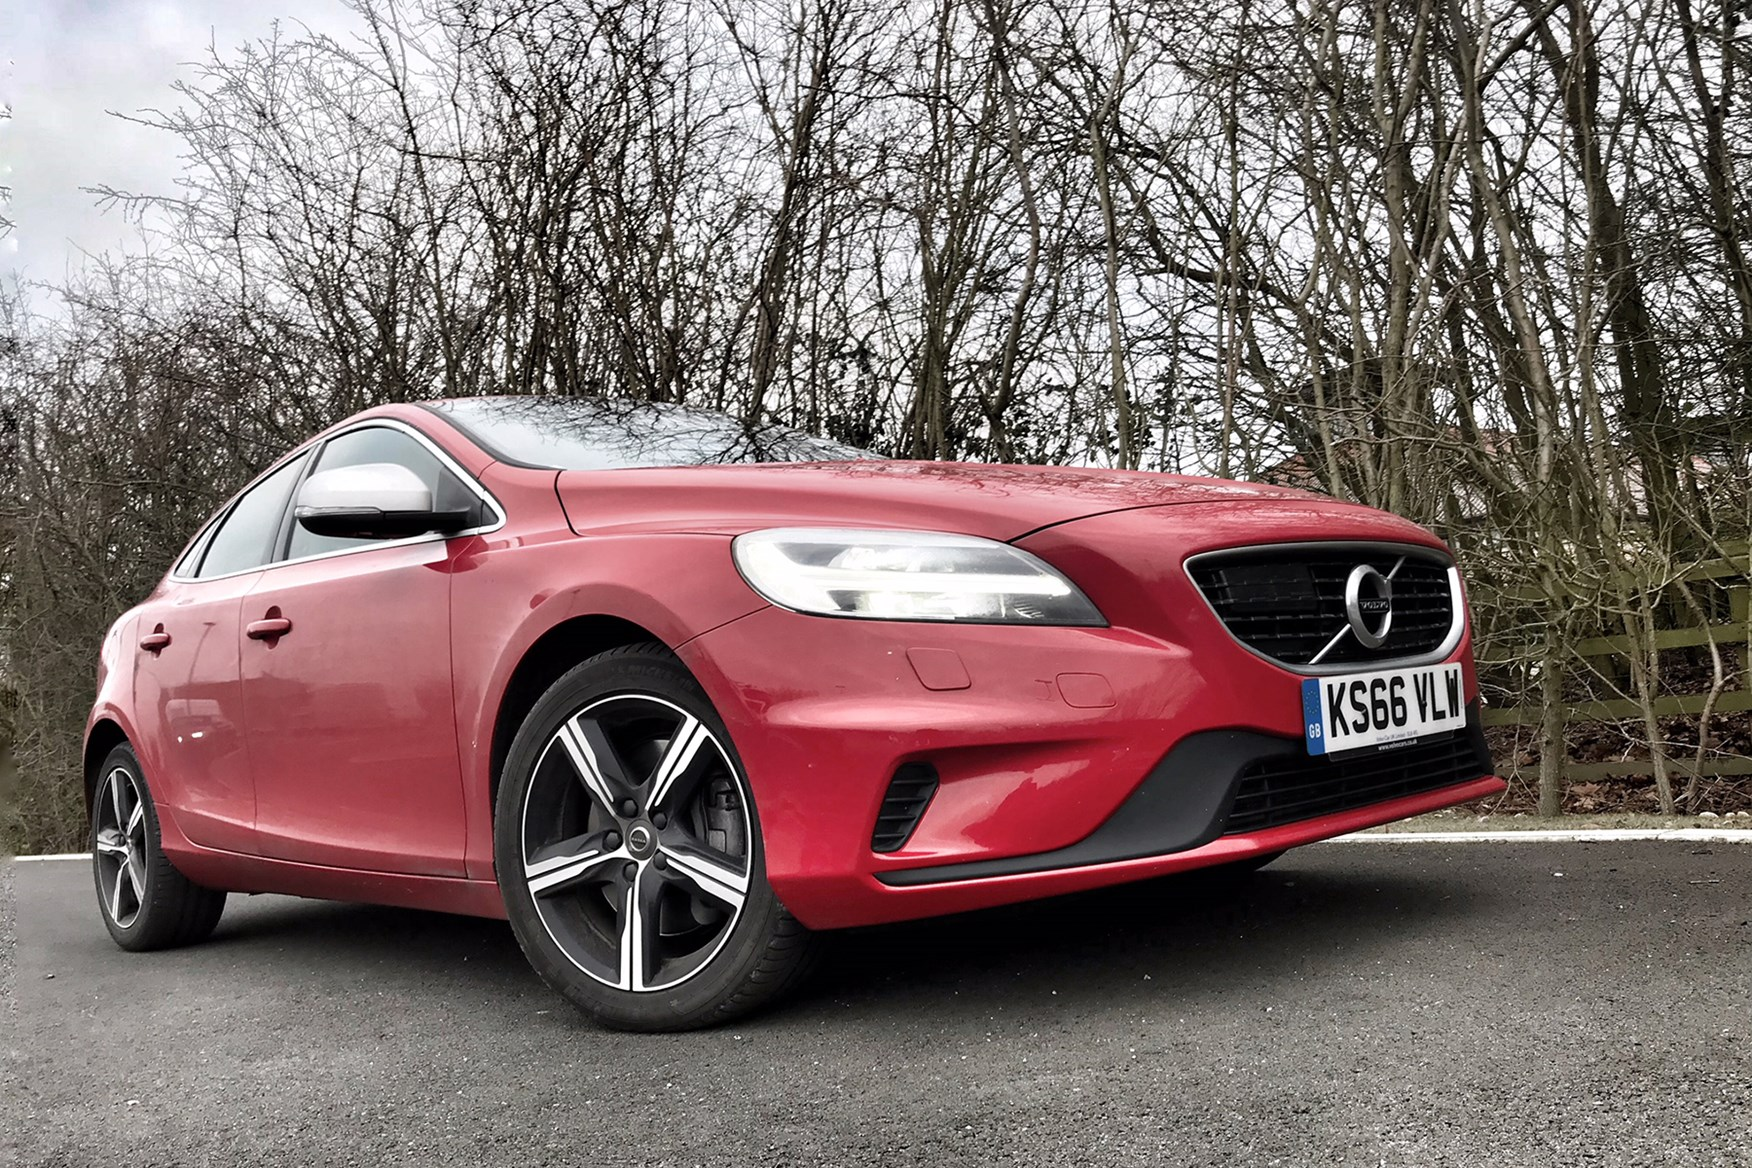 Volvo V40 approved used long-term test